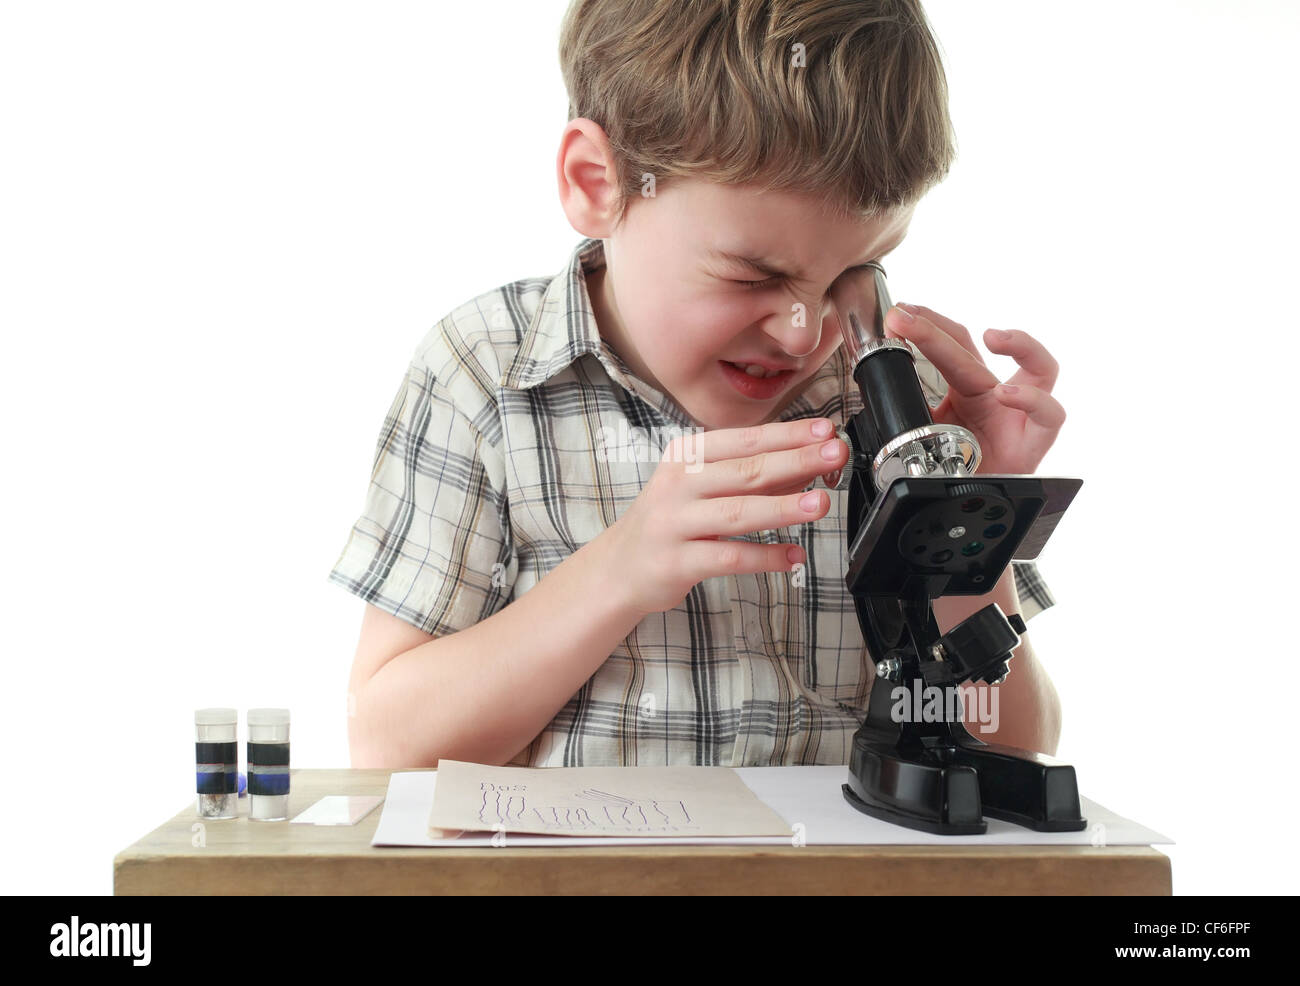 Curious little boy in checkered shirt stares into black microscope - Stock Image